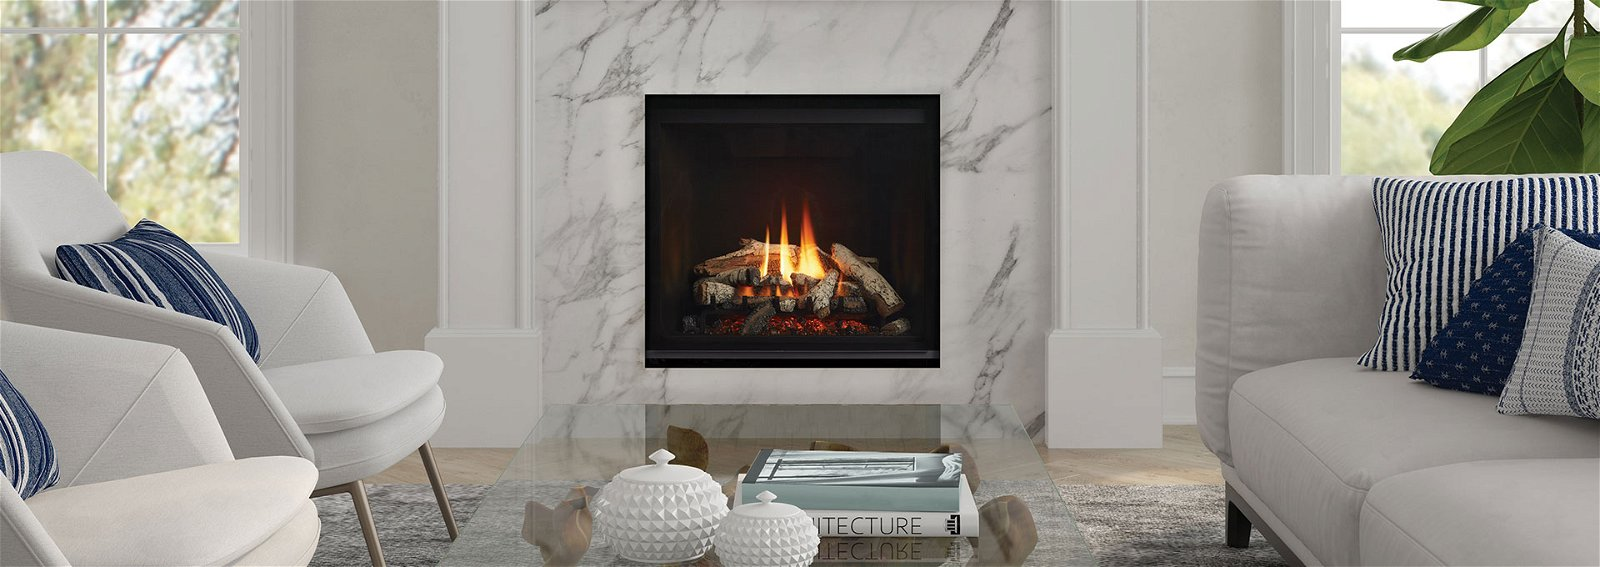 Regency Fireplaces and home heating solutions for sale at Ace Swim and Leisure in New York